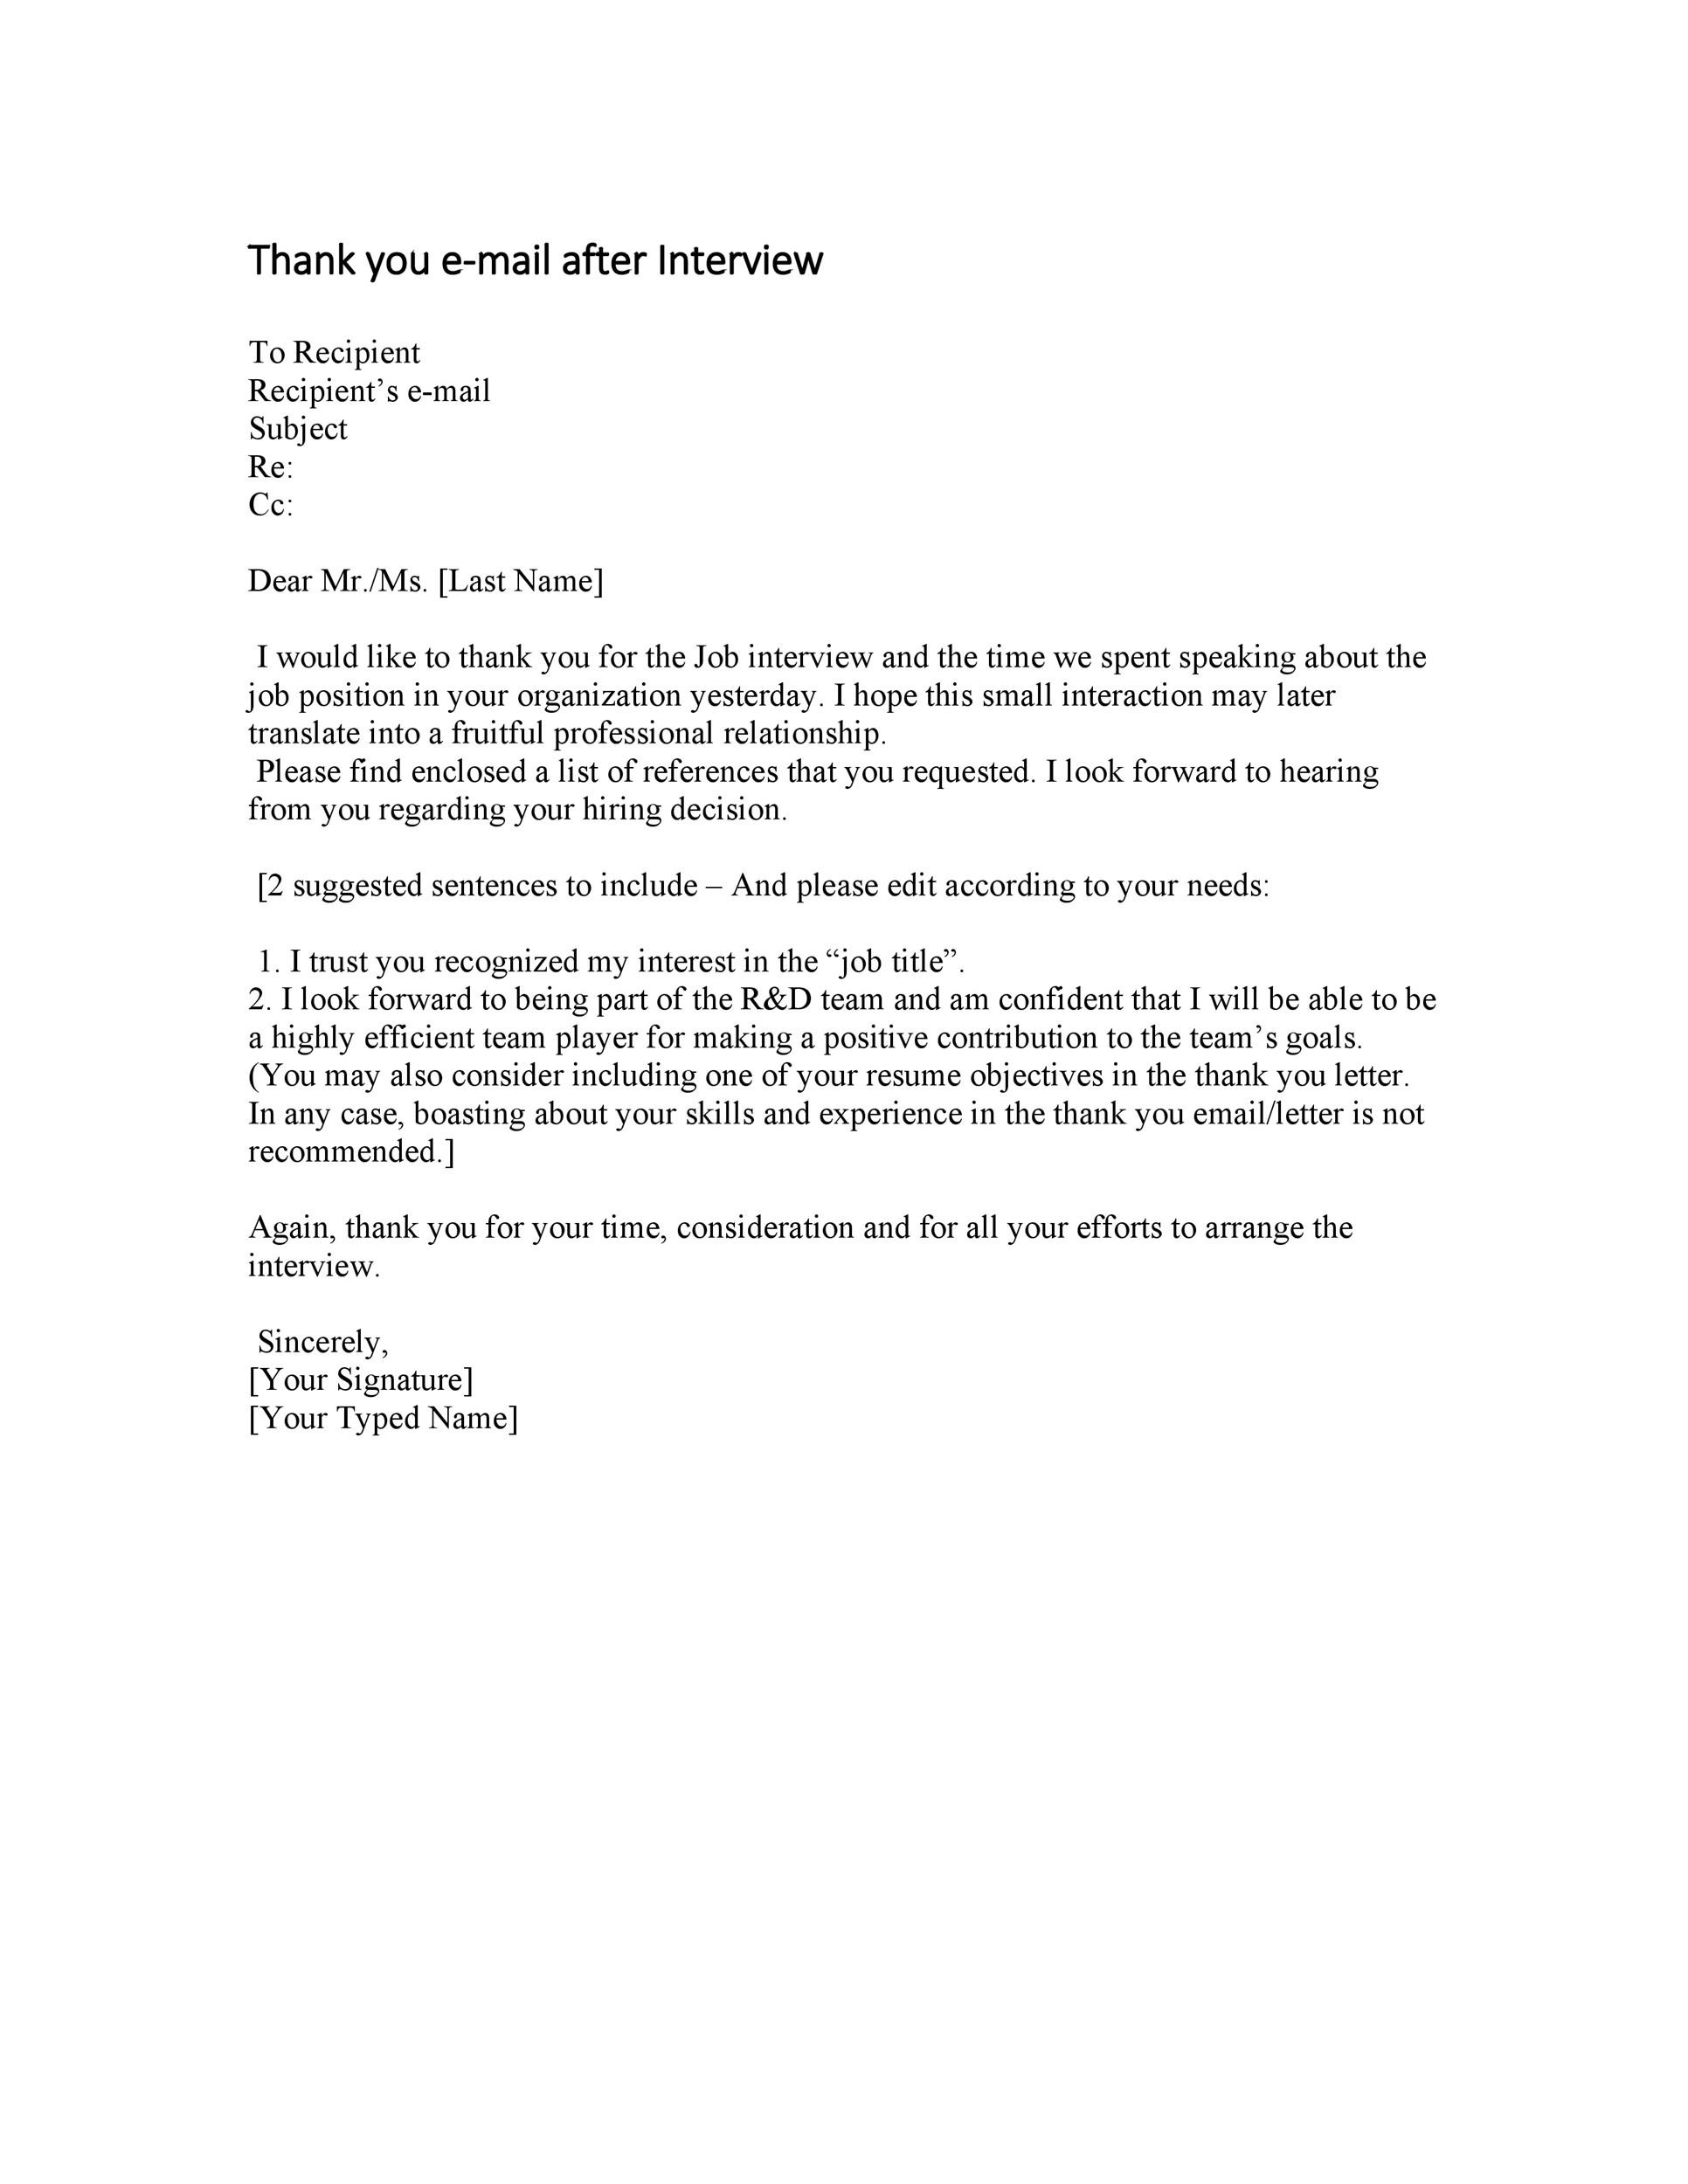 Free Thank you e-mail after Interview Template 19